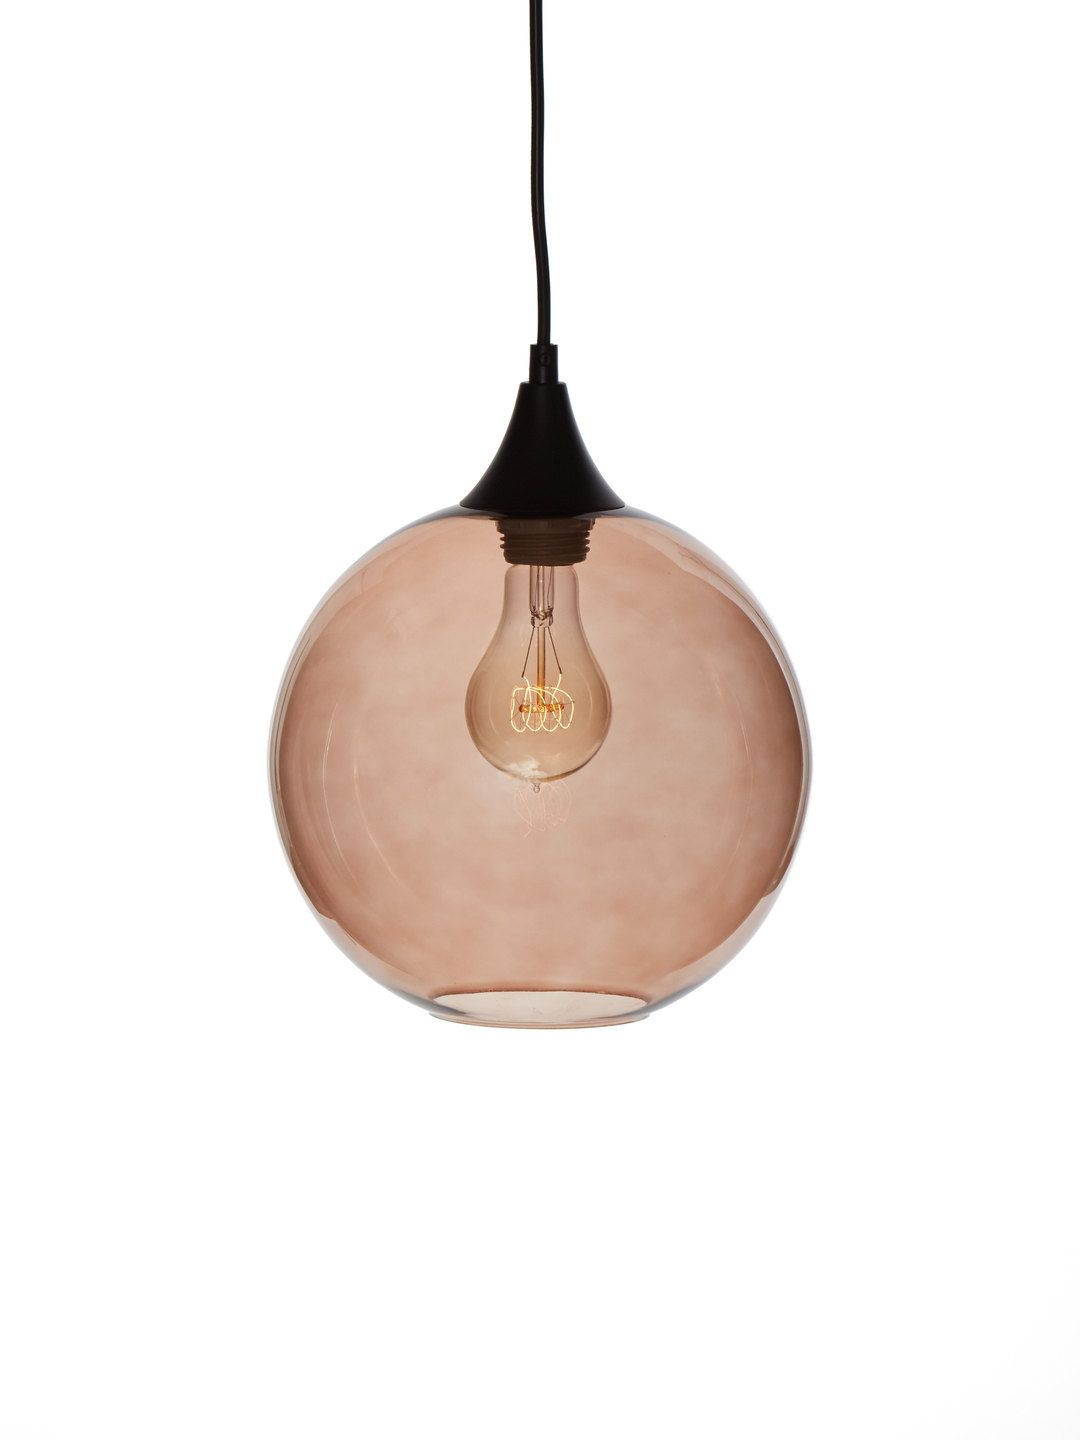 Bubble Pendant Lamp by stone & aster at Gilt | Beth living room ...